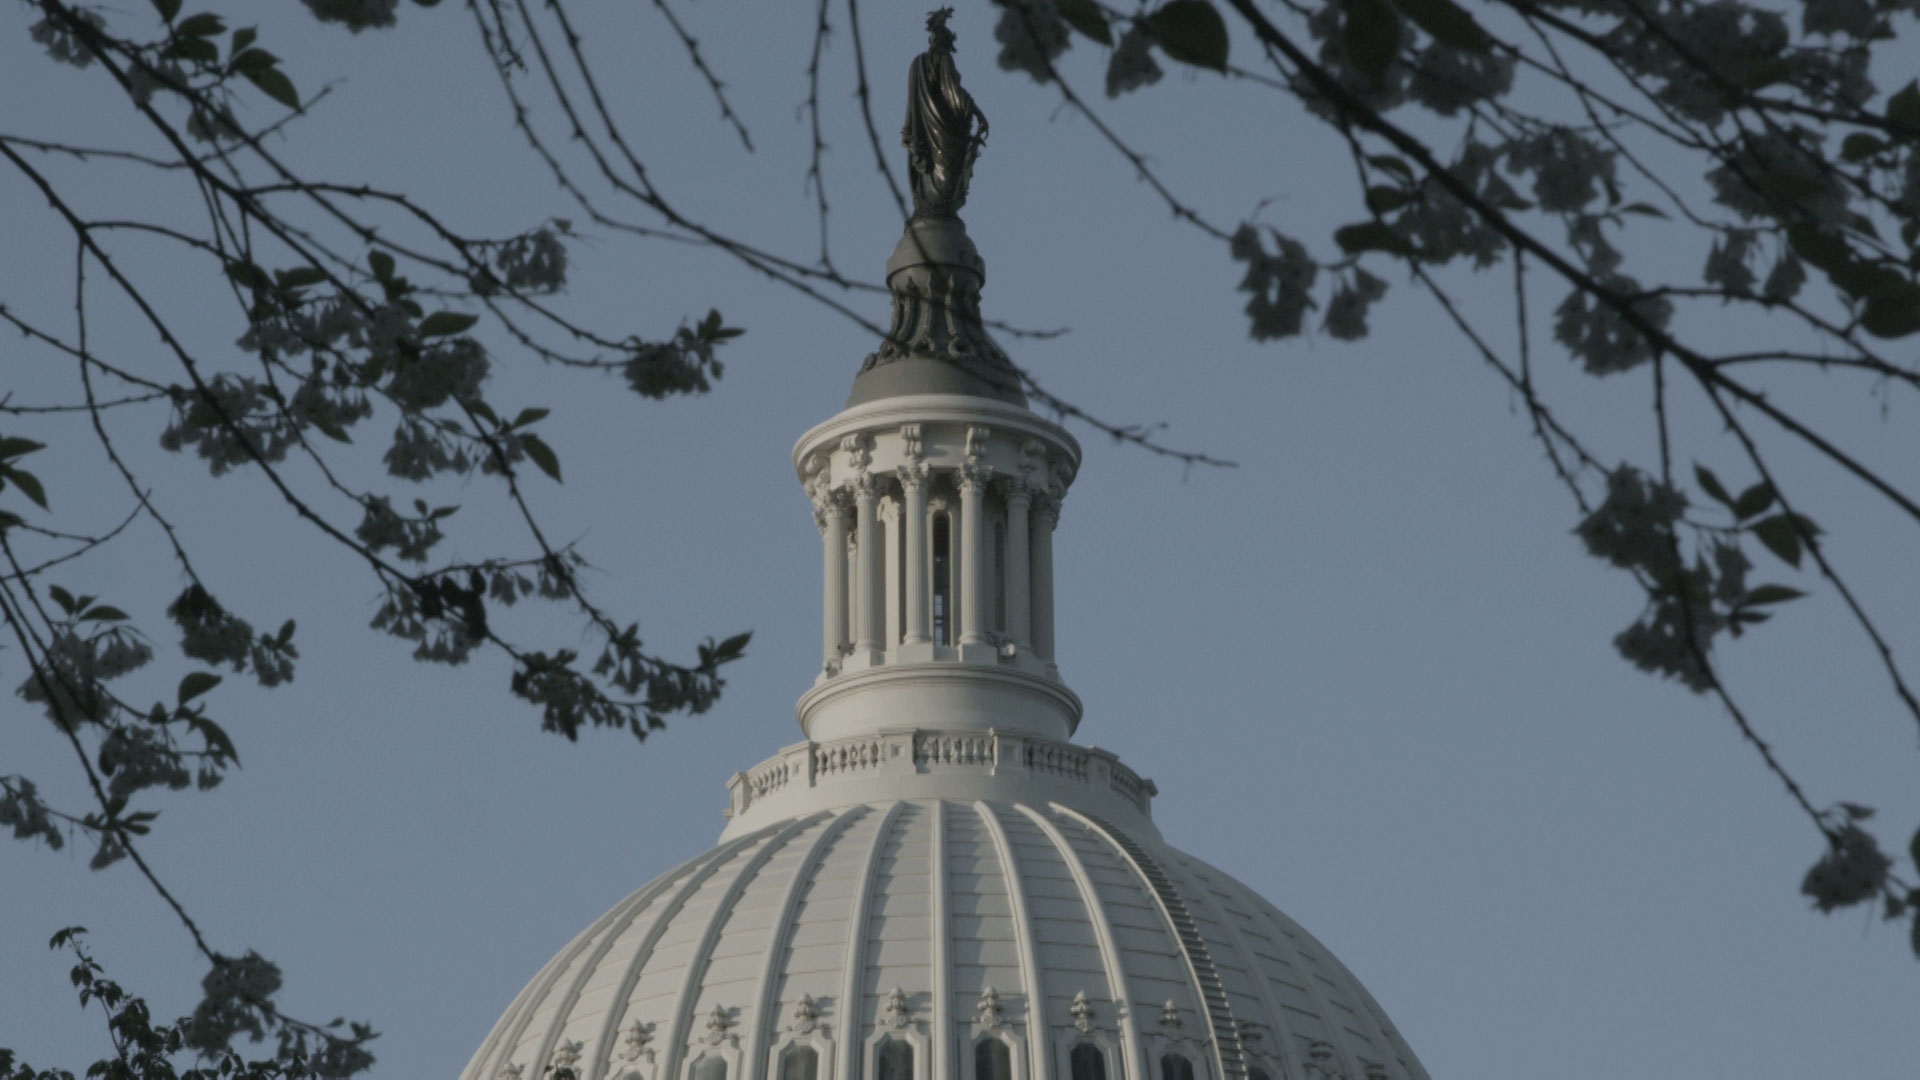 A close up of the dome on the U.S. Capitol.